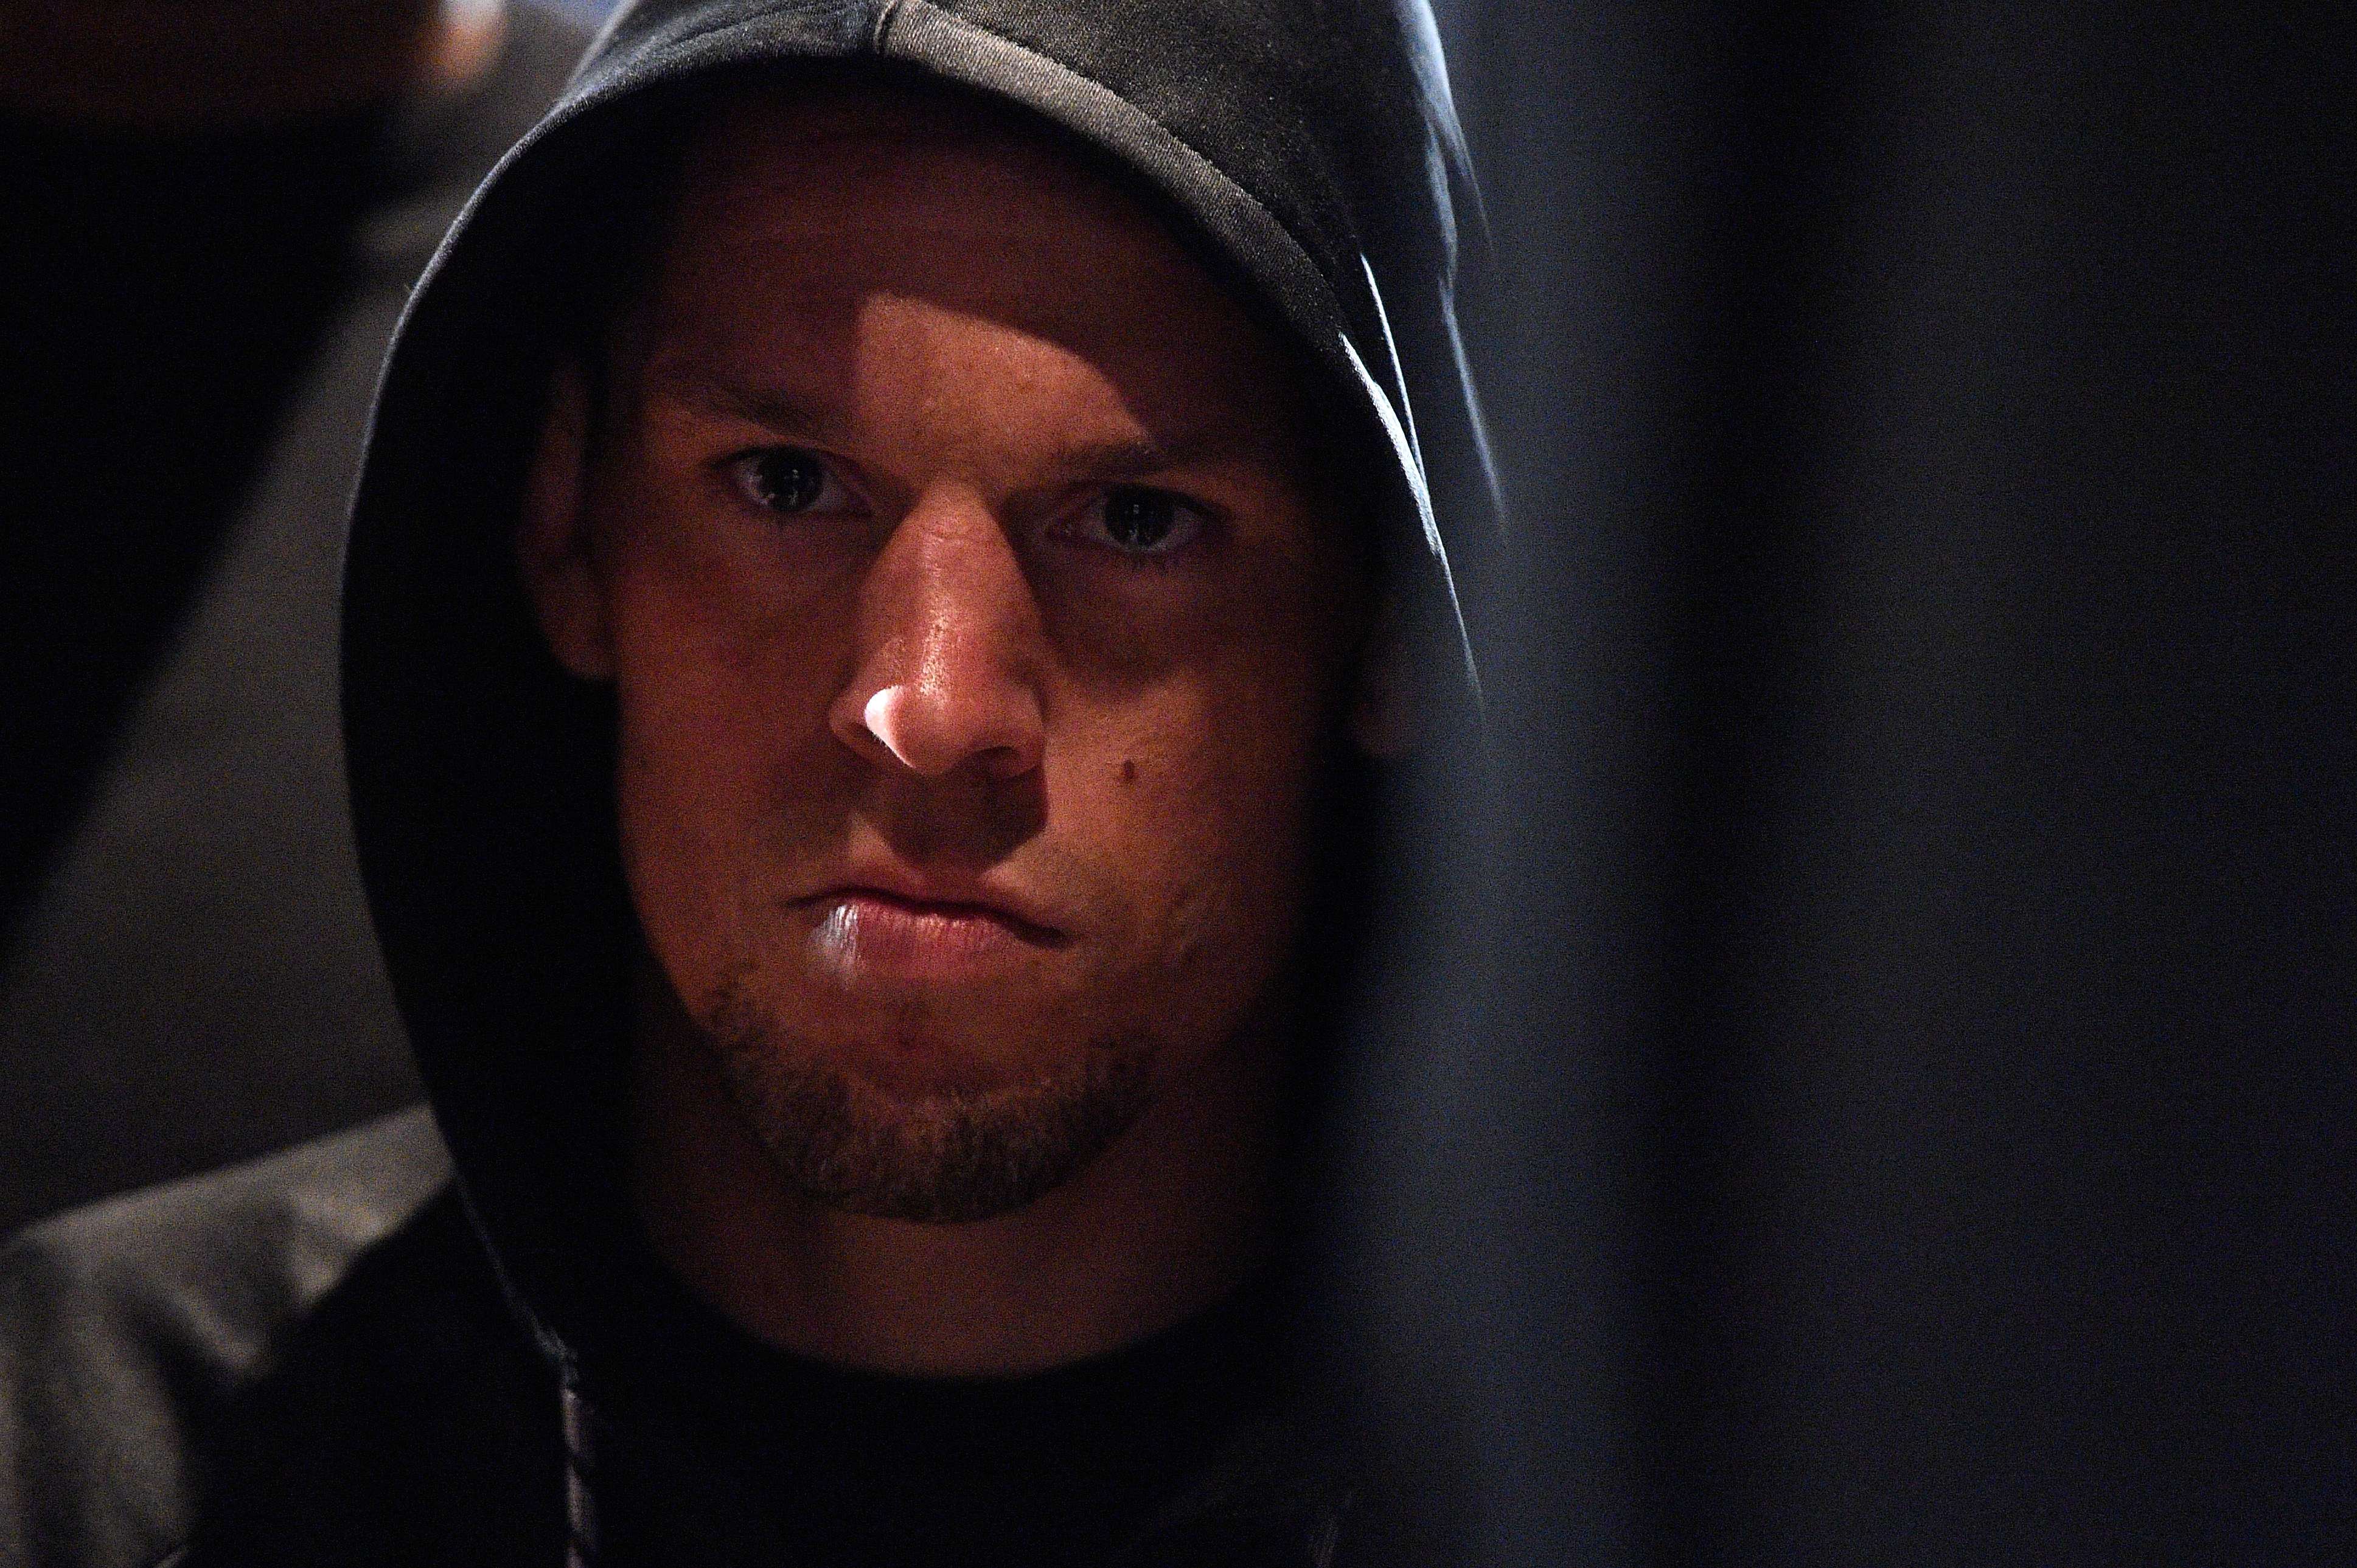 Nate Diaz waits backstage during the UFC 196 weigh-in at the MGM Grand Garden Arena on March 4, 2016 in Las Vegas, Nevada. (Photo by Jeff Bottari/Zuffa LLC)